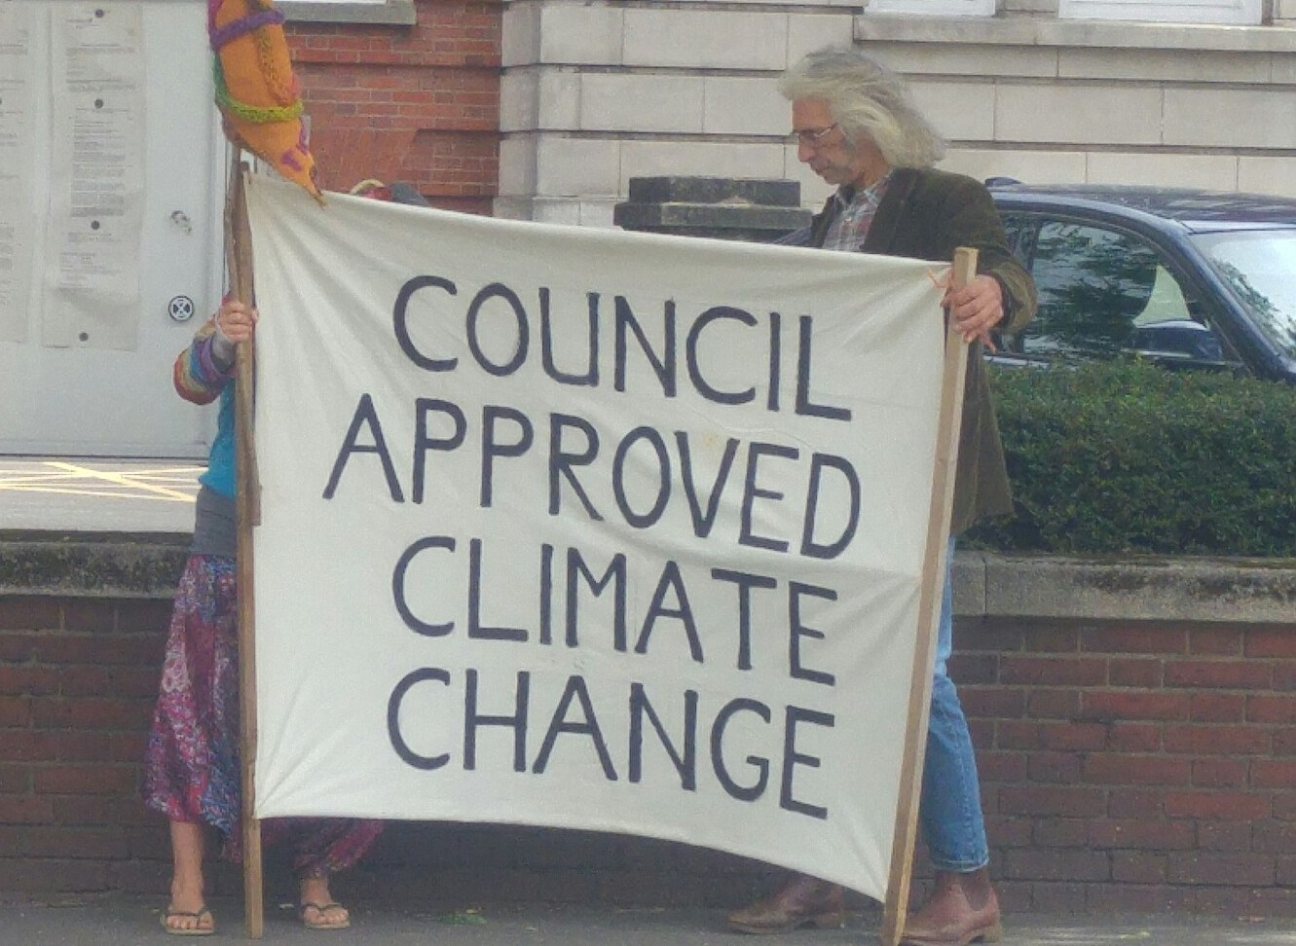 Campaigners outside Lincolnshire County Council, 1 July 2019. Photo: DrillOrDrop